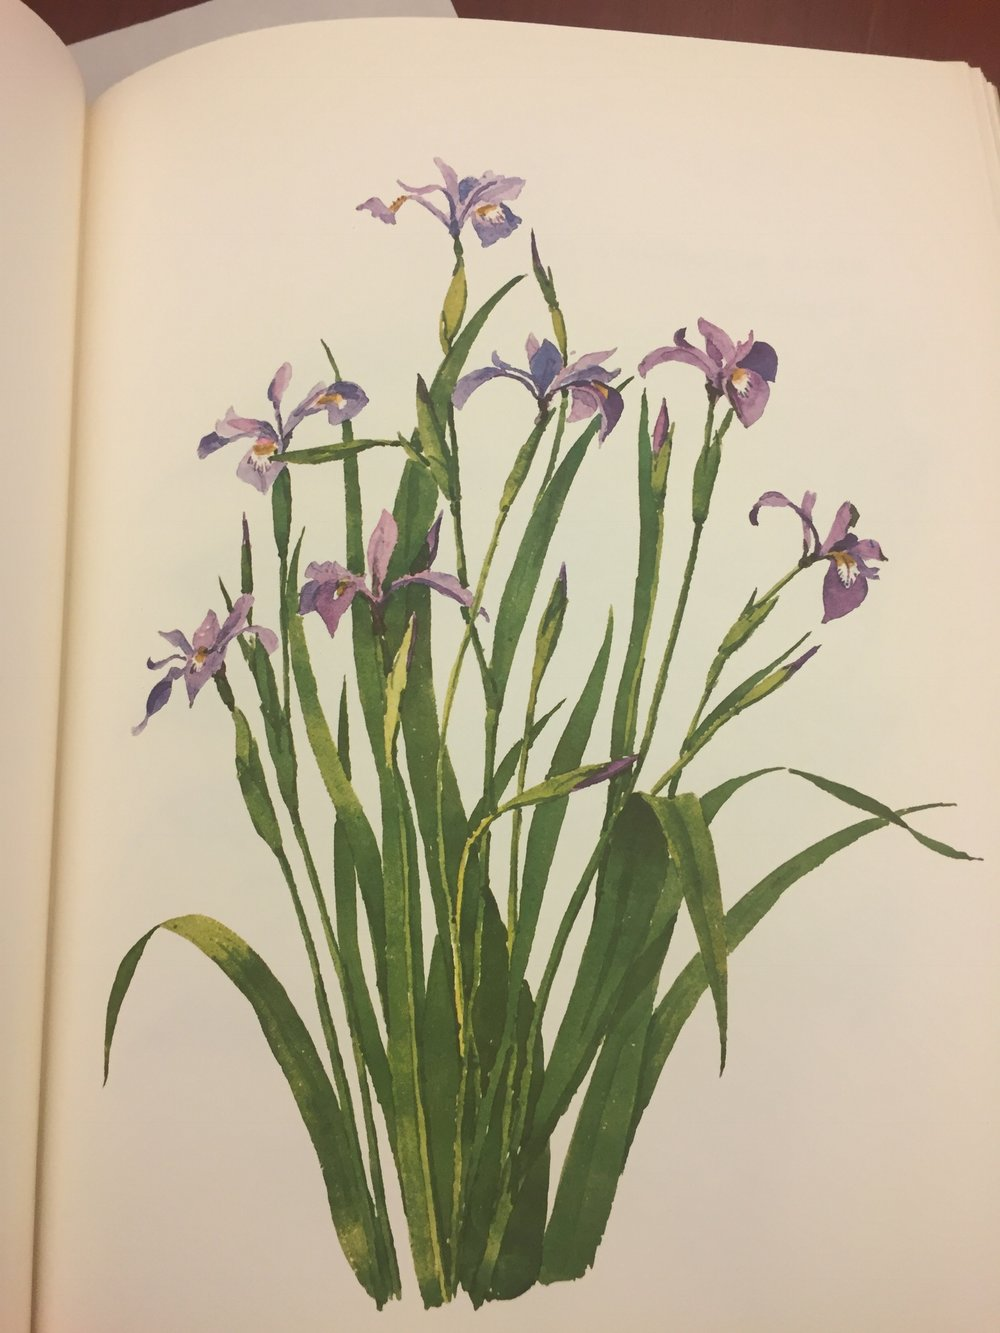 T. Merrill Prentice. Weeds & Wildflowers of Eastern North America, 1973. Minneapolis Athenaeum